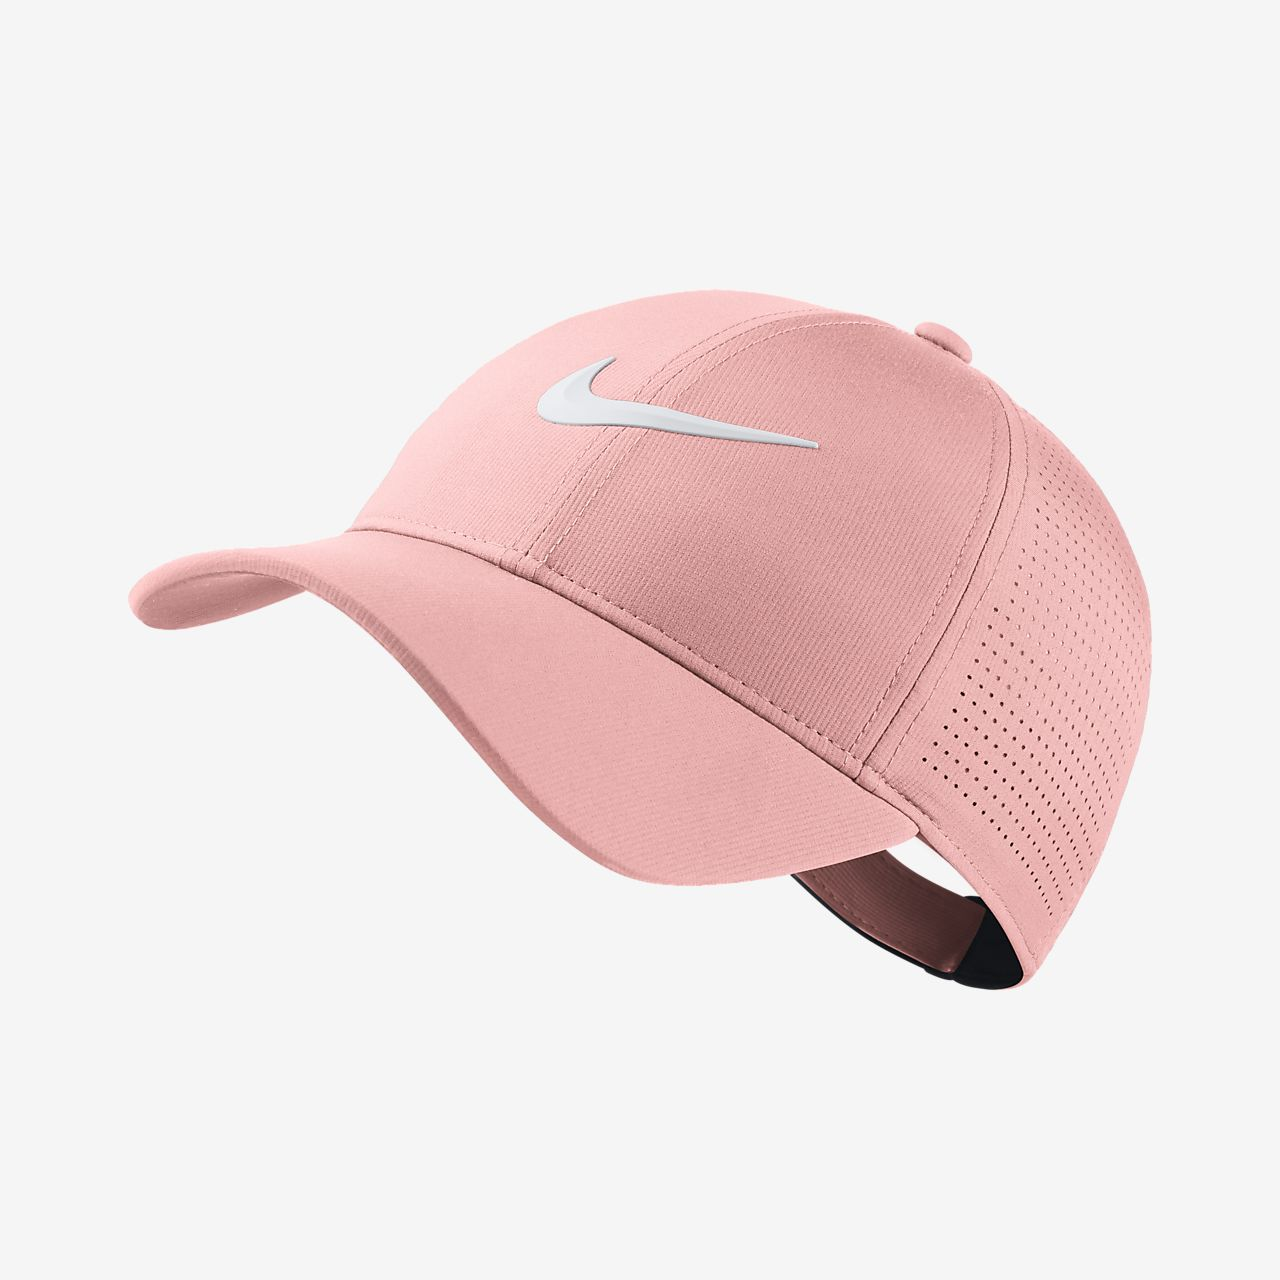 nike aerobill legacy 91 adjustable golf hat nike com